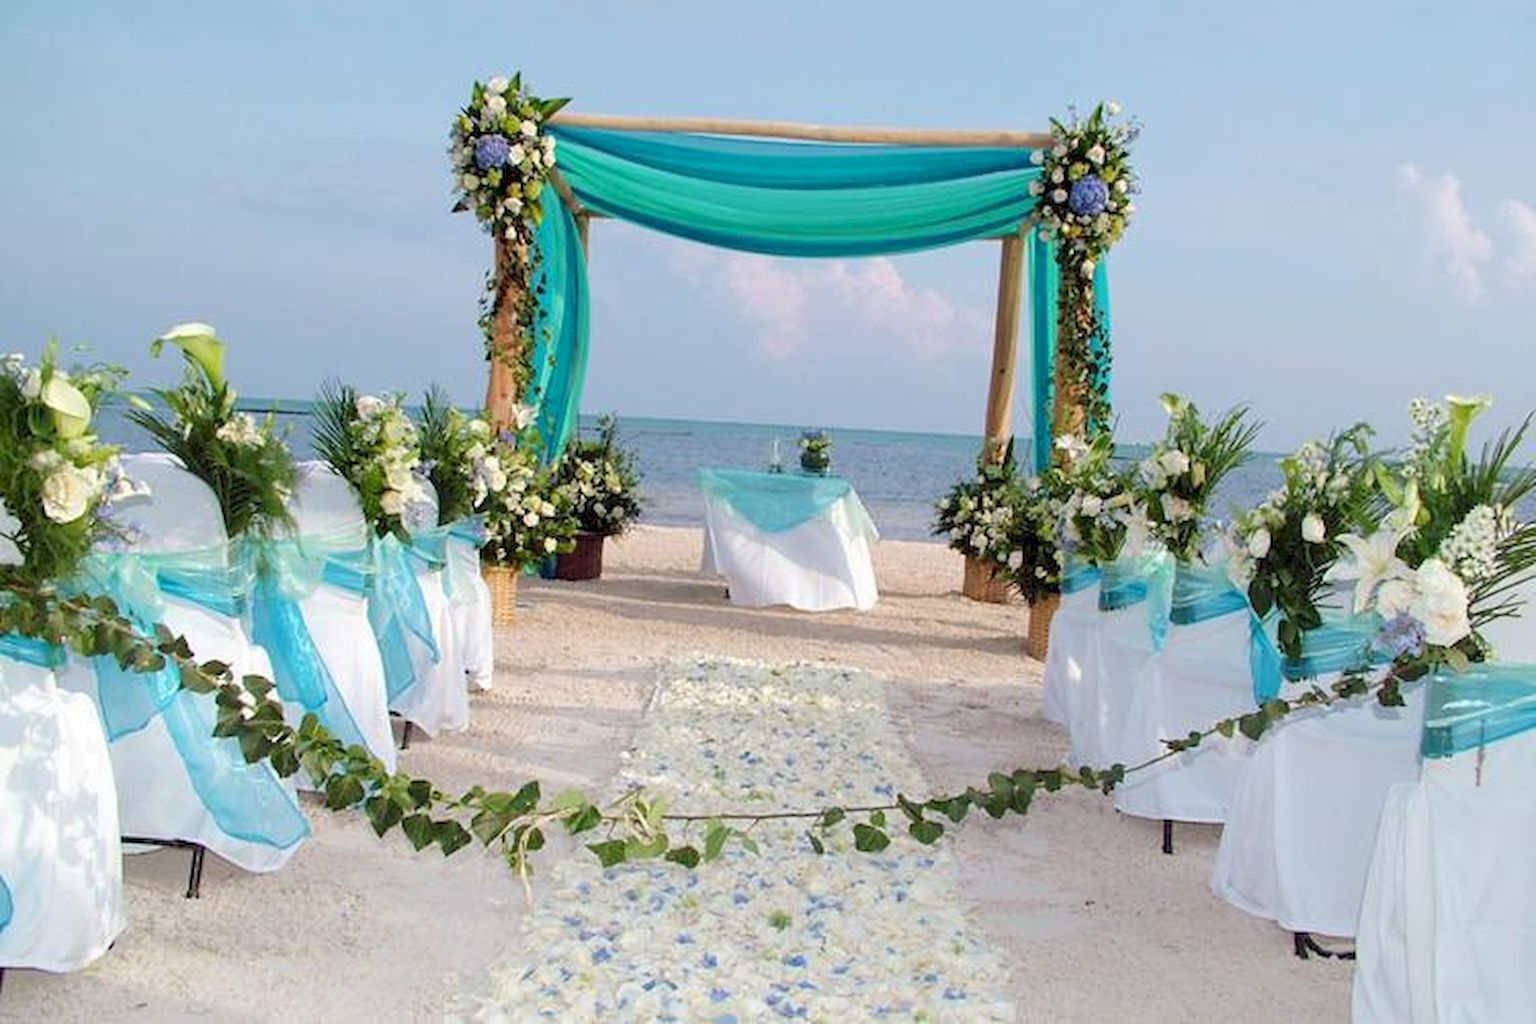 35 Beautiful Beach Wedding Ideas Decorations (30) - worldecor.co | Beach  theme wedding, Beach wedding colors, Beach wedding decorations